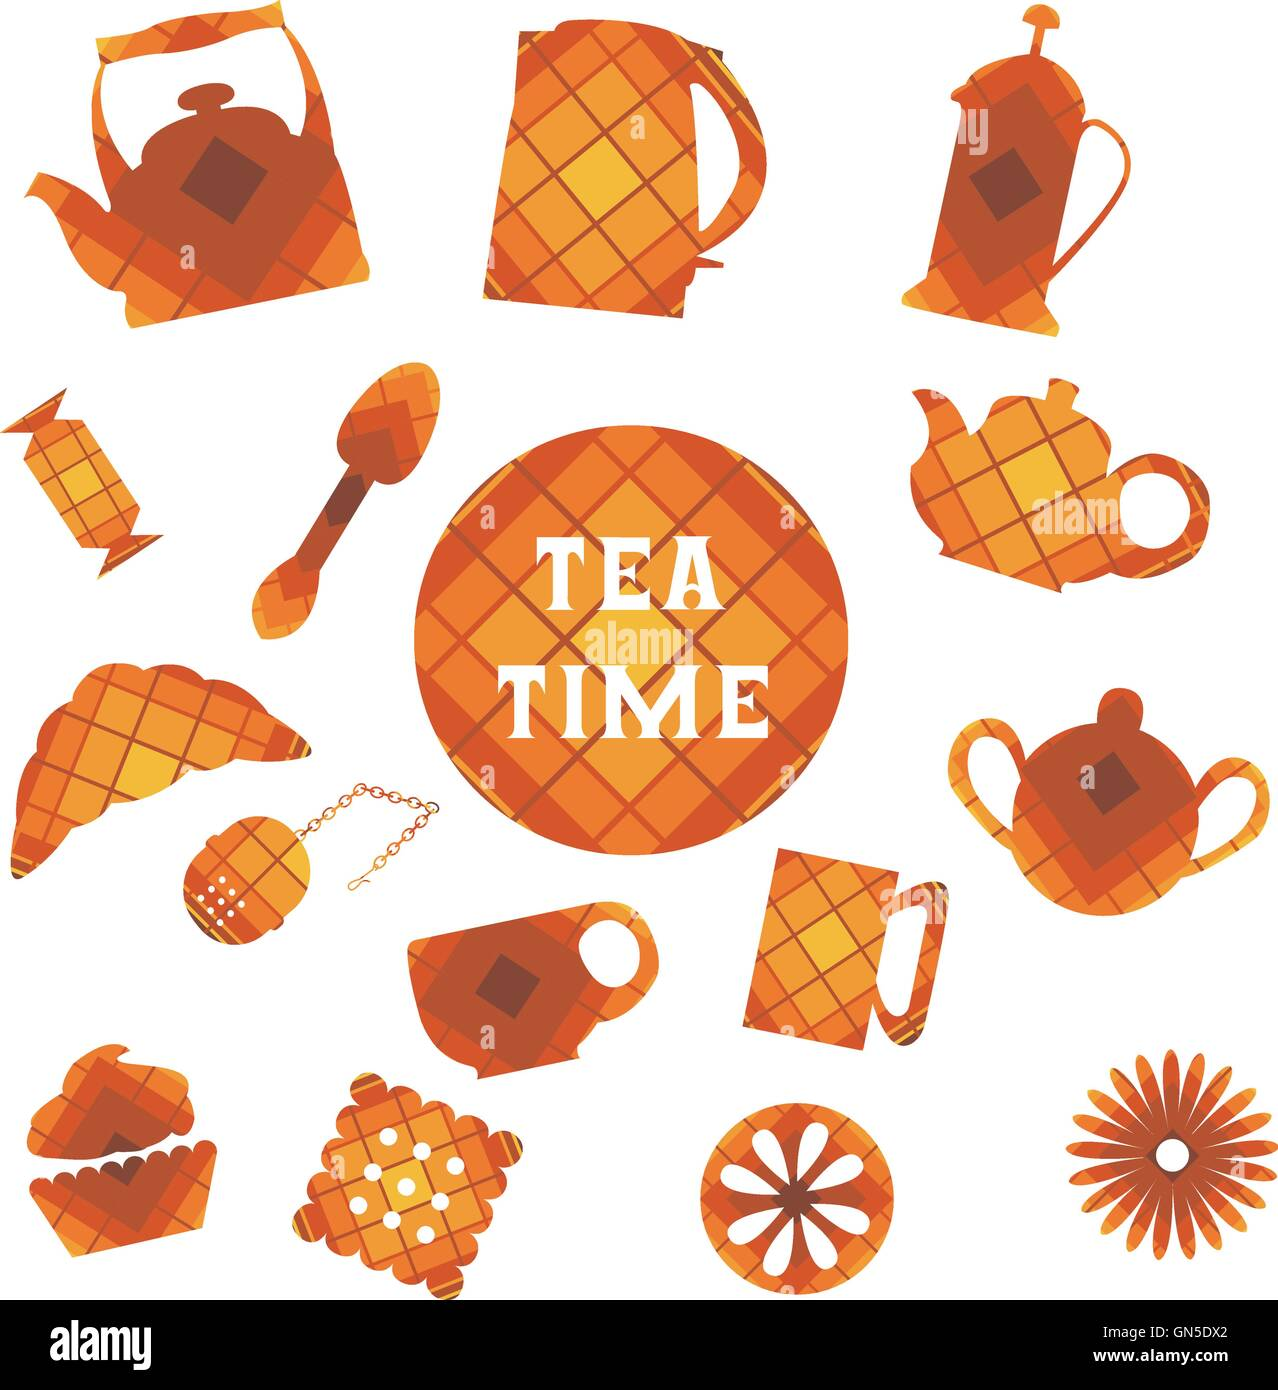 Set of 16 icons. Tea time. In square - Stock Image